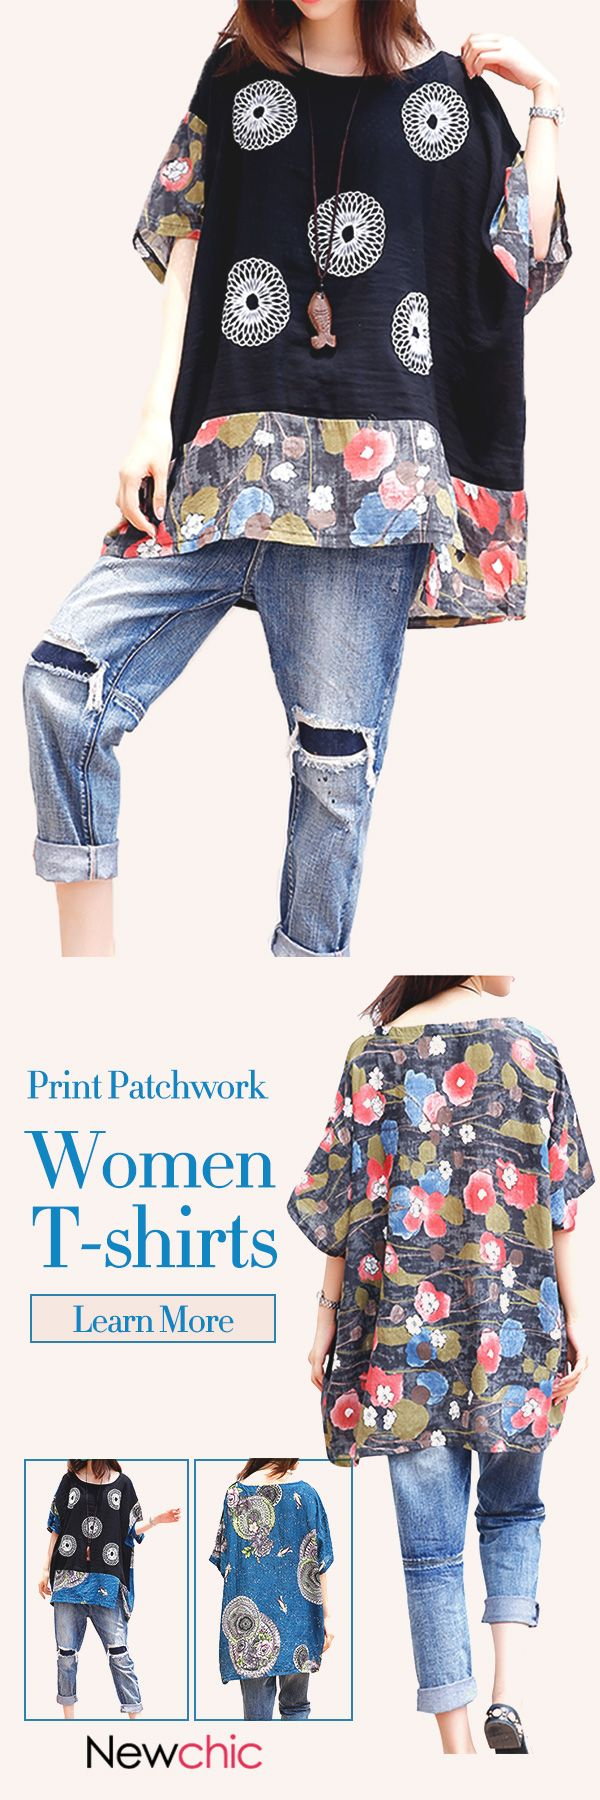 [Newchic Online Shopping] 48%OFF Women's Folk Style Patchwork Print T-shirts with O-neck and Bat Sleeve